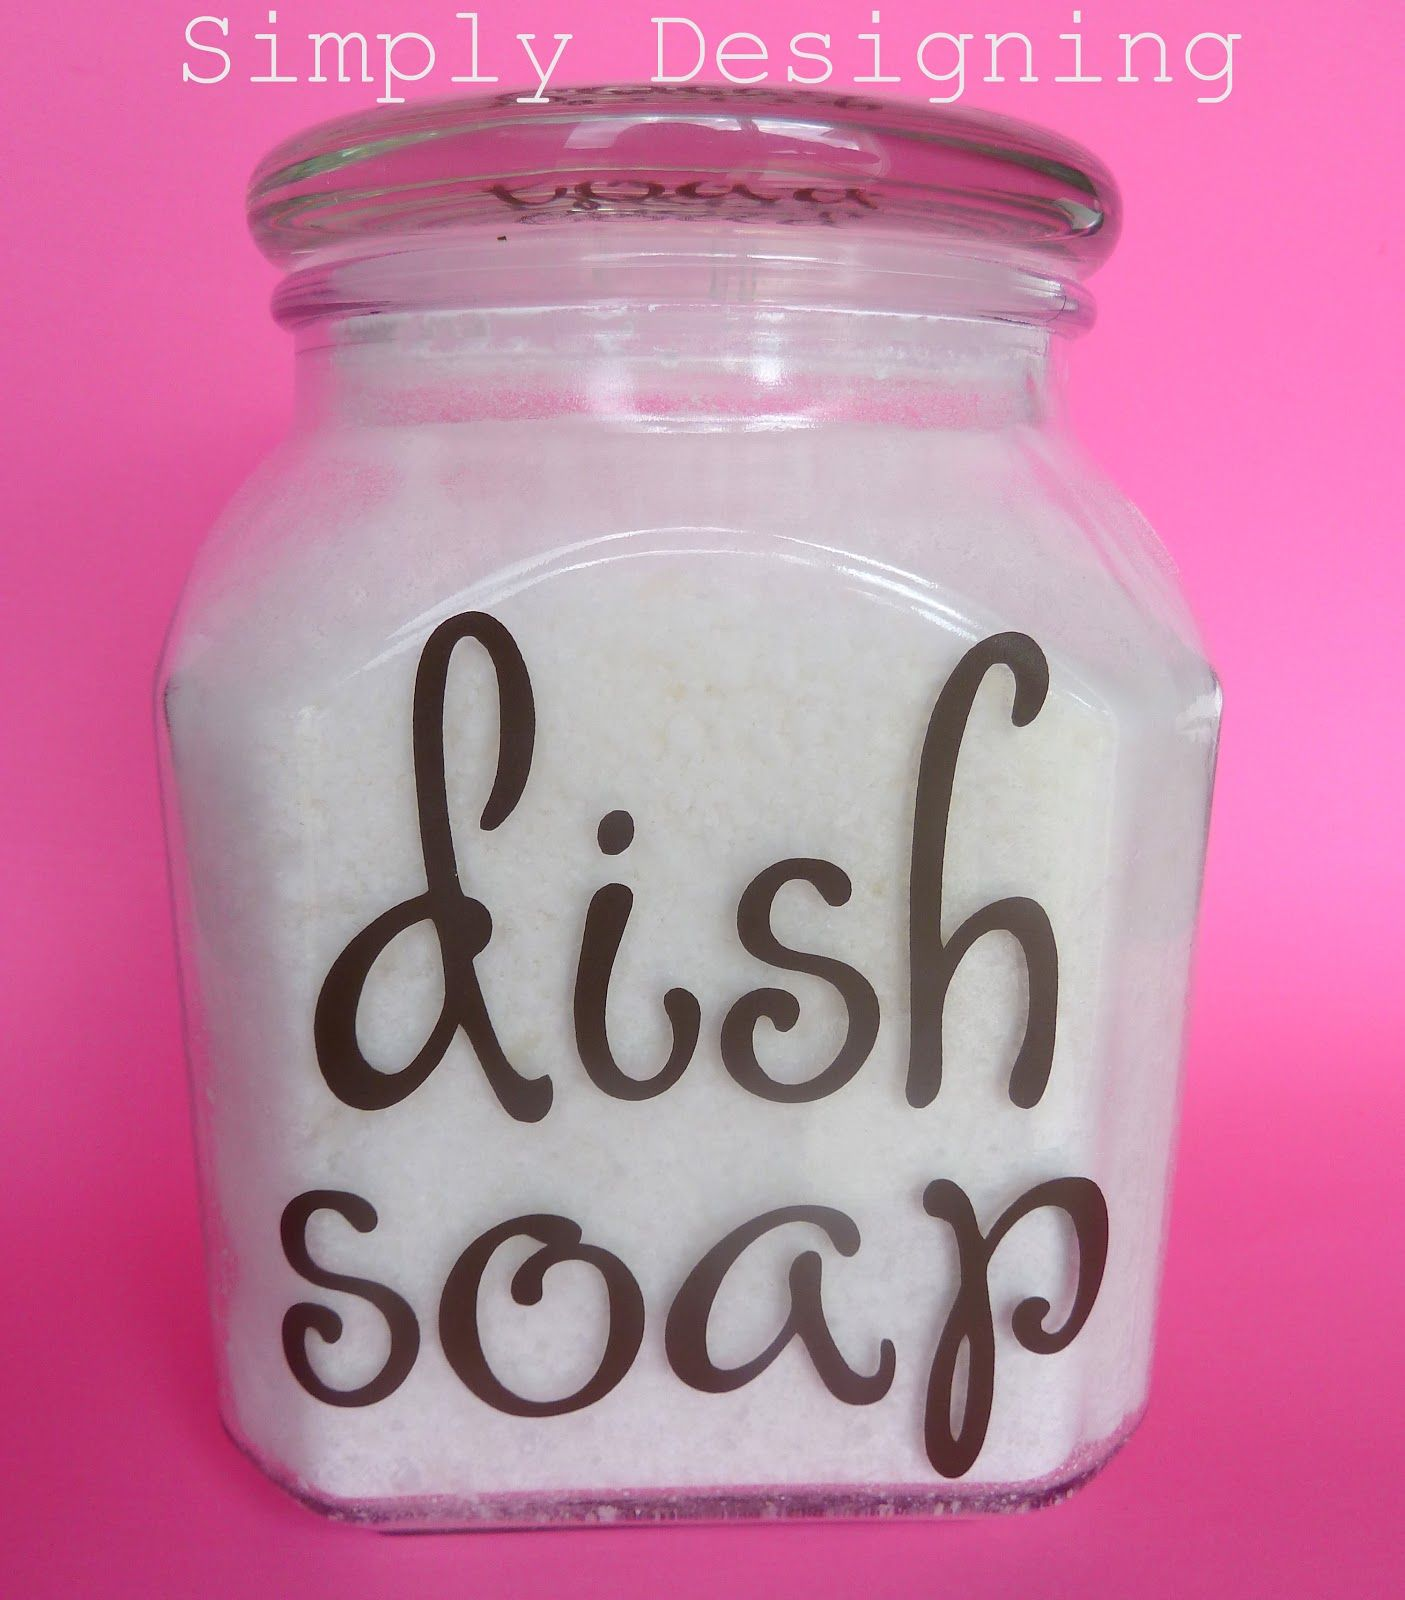 If Your Dishes Have Hard Water Stains You Must Try This Homemade Dishwasher Detergent Homemade Dishwasher Detergent Homemade Dish Soap Diy Dishwasher Detergent